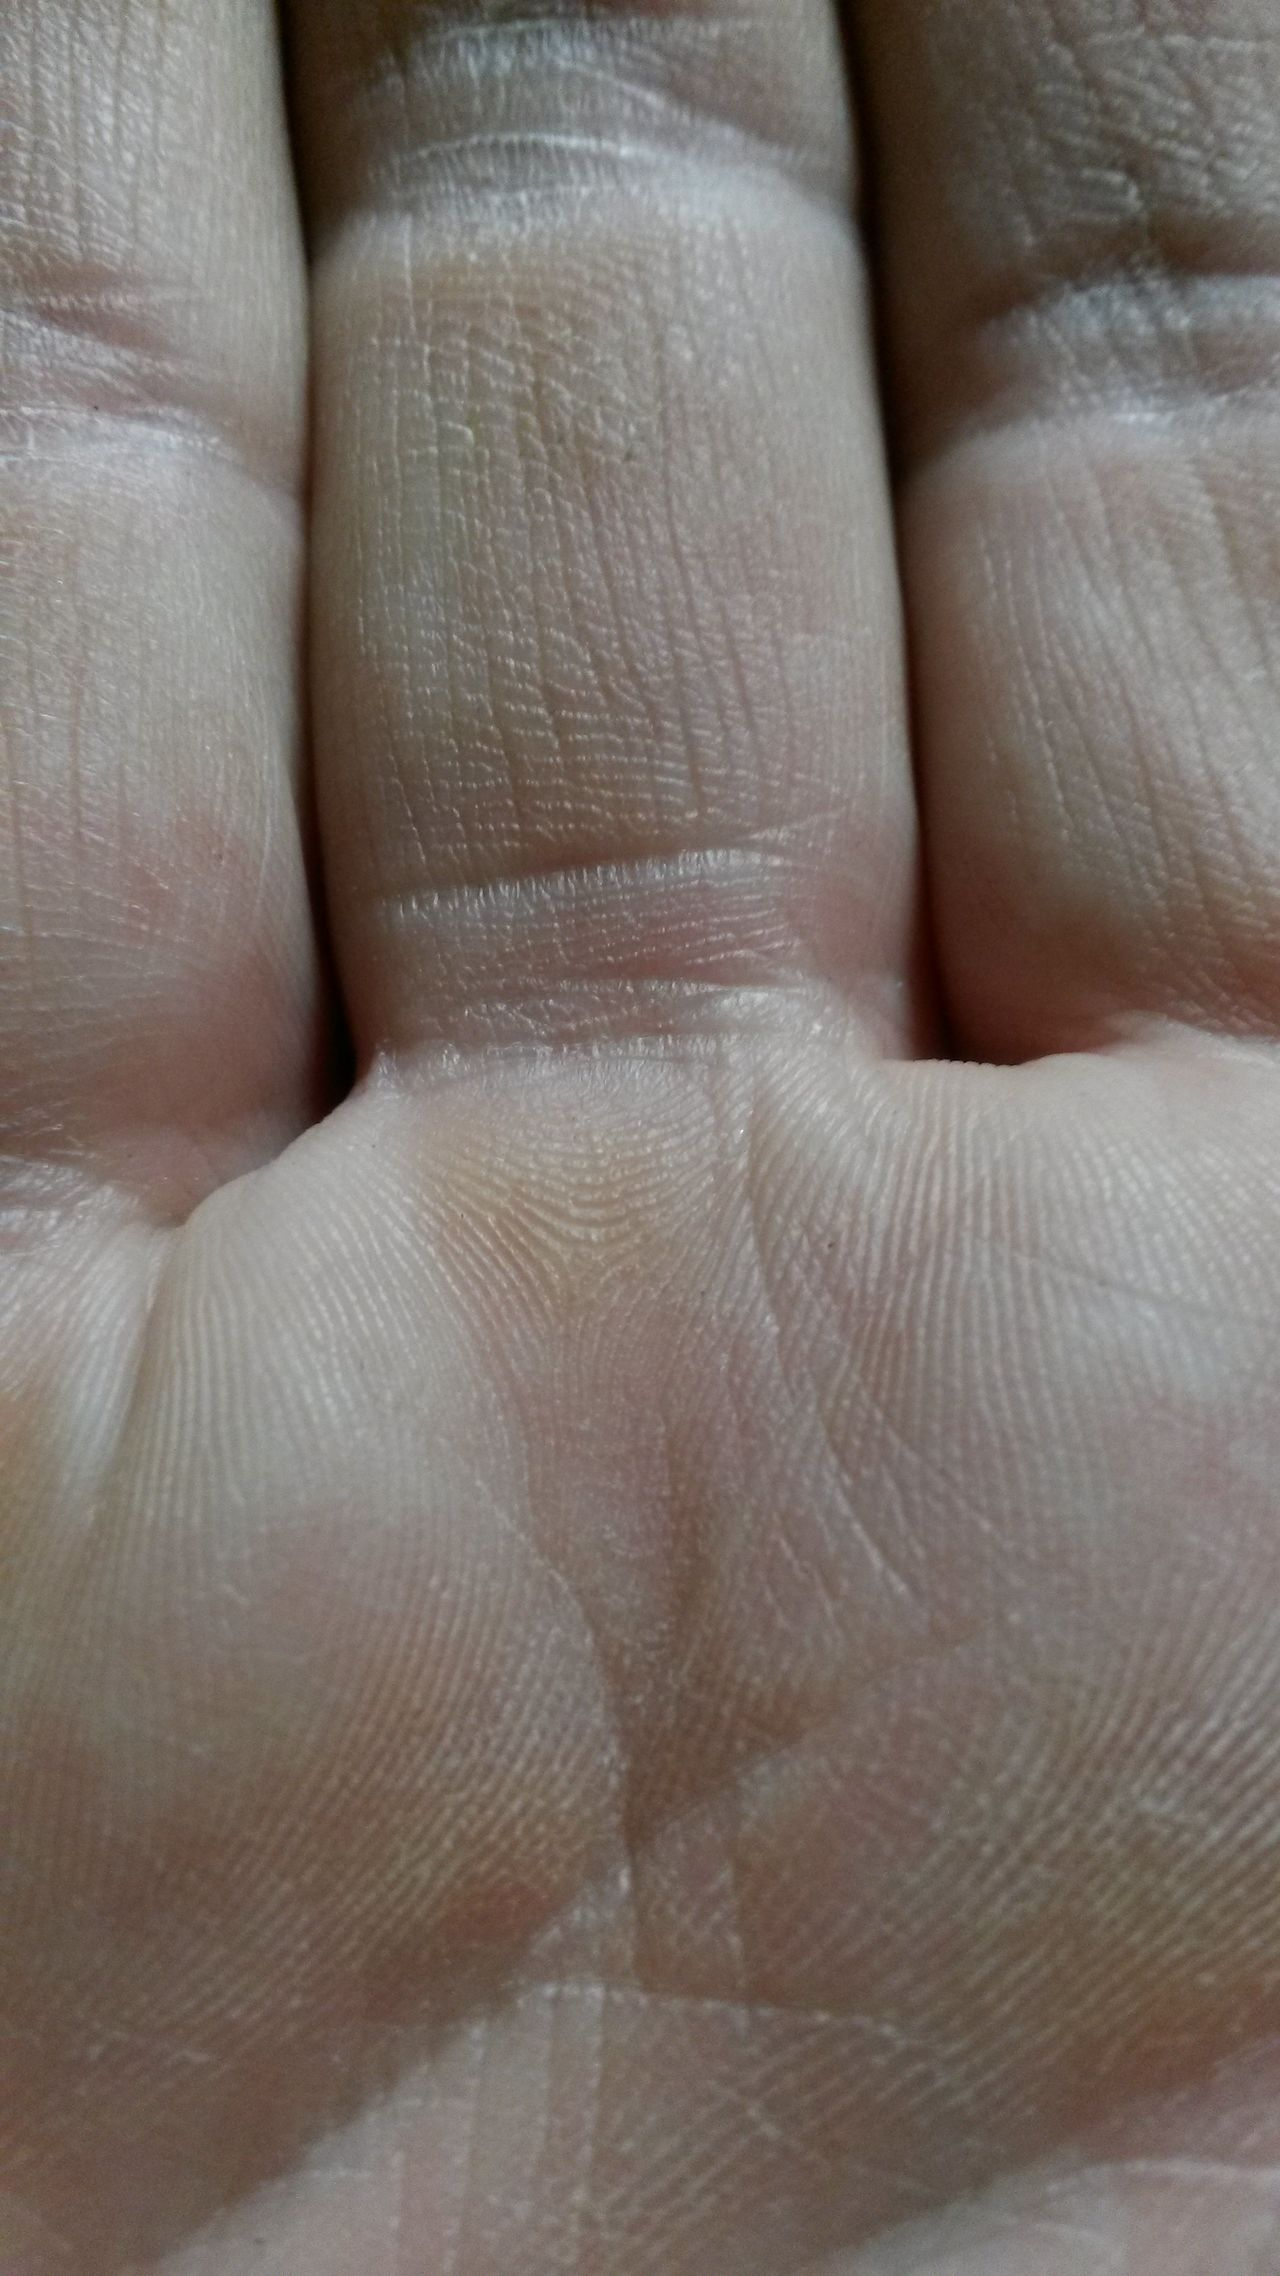 Human Hand Human Body Part Indoors  Close-up Real People One Person Maximum Closeness Wrinkled Skin Fingers Palm Working Hands Working Man Lifeline